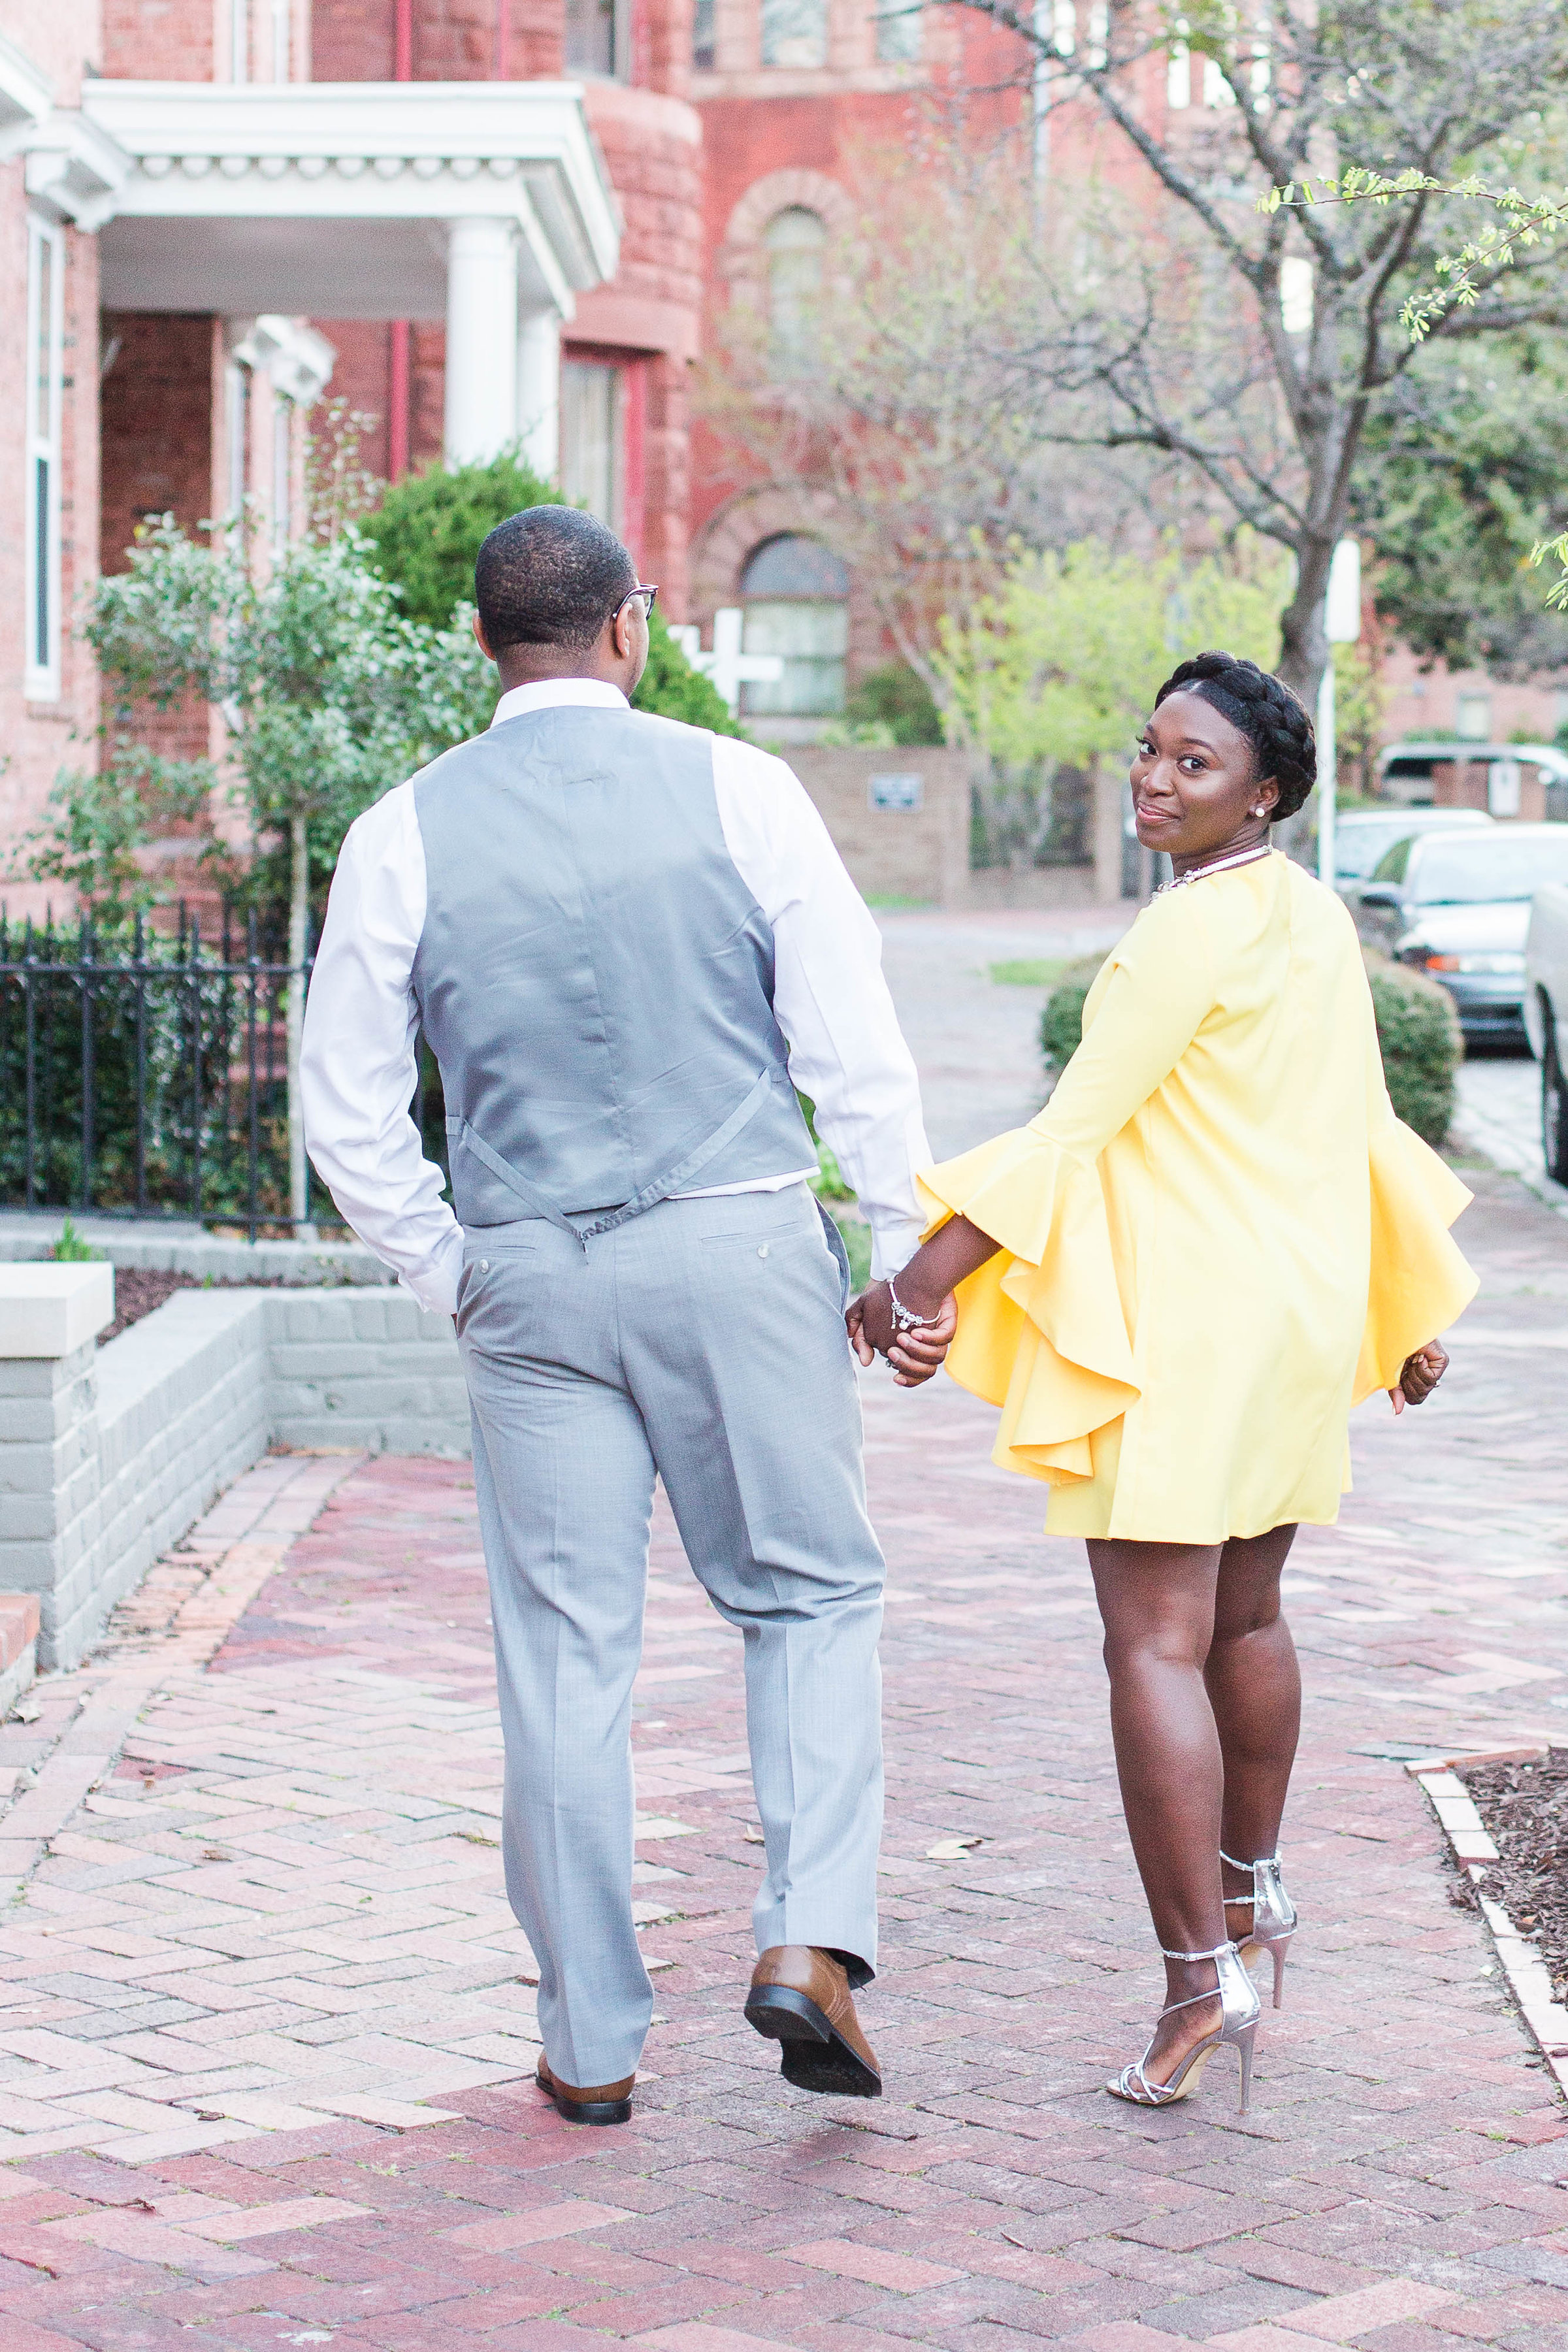 downtown_norfolk_va_freemason_district_engagement_session_by_virginia_wedding_photographer